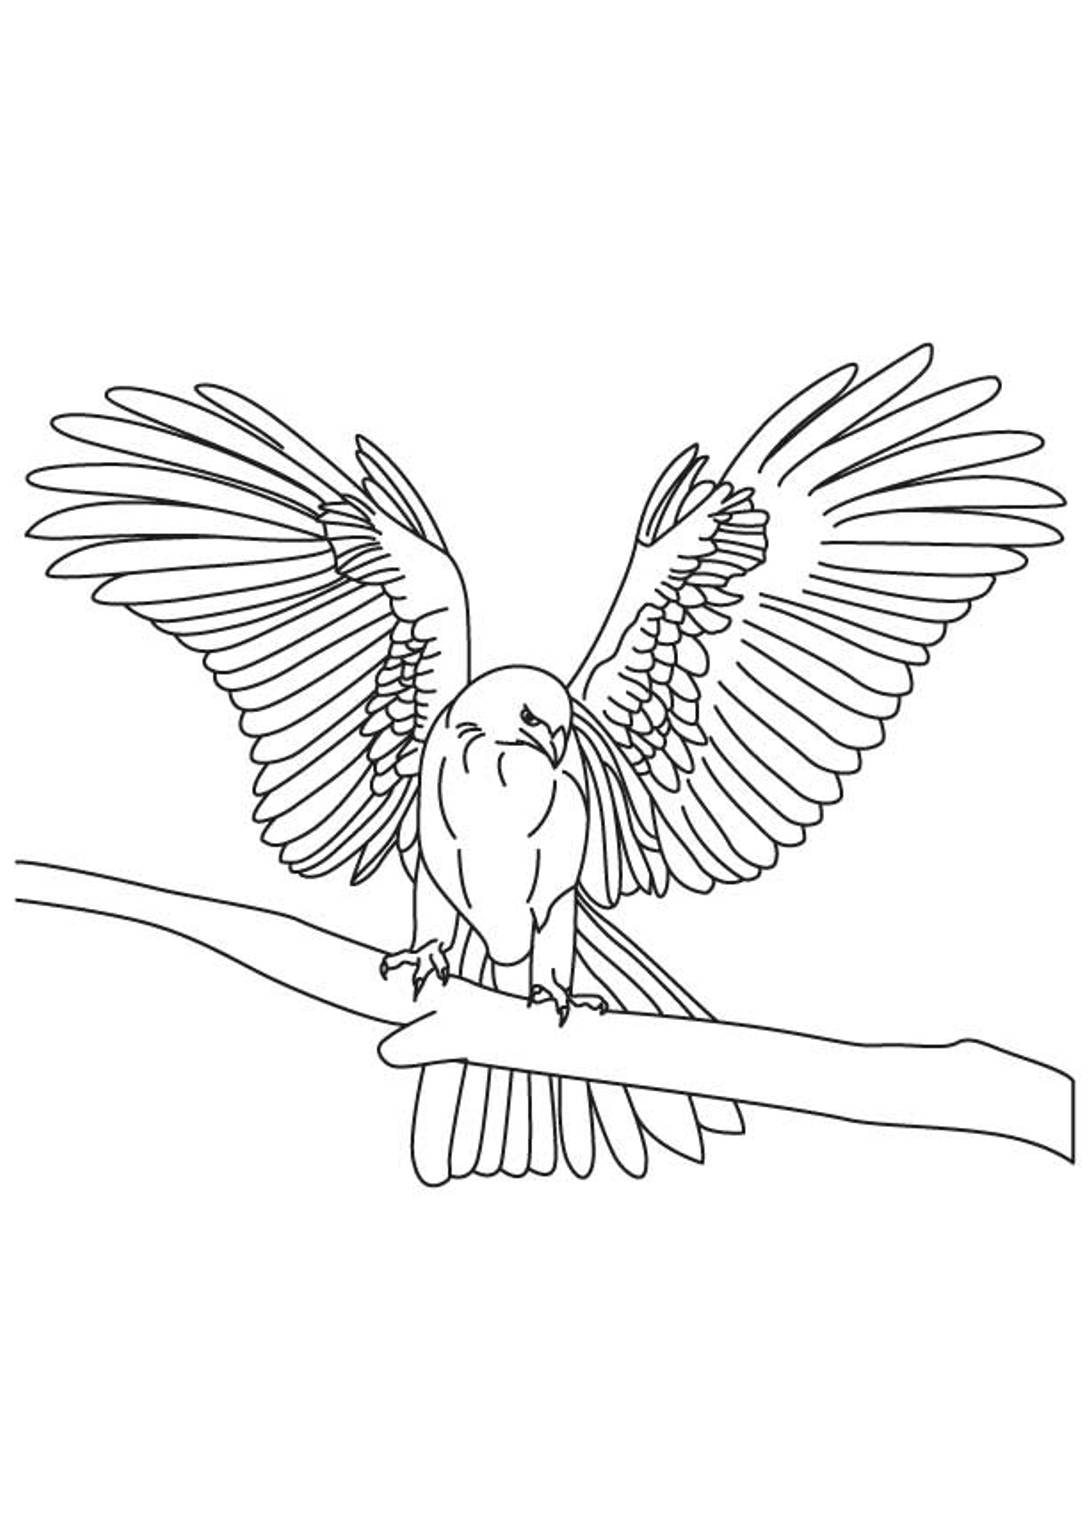 1091x1531 Falcon Coloring Tapered Wings Falcon Bird Coloring Pages. Falcon